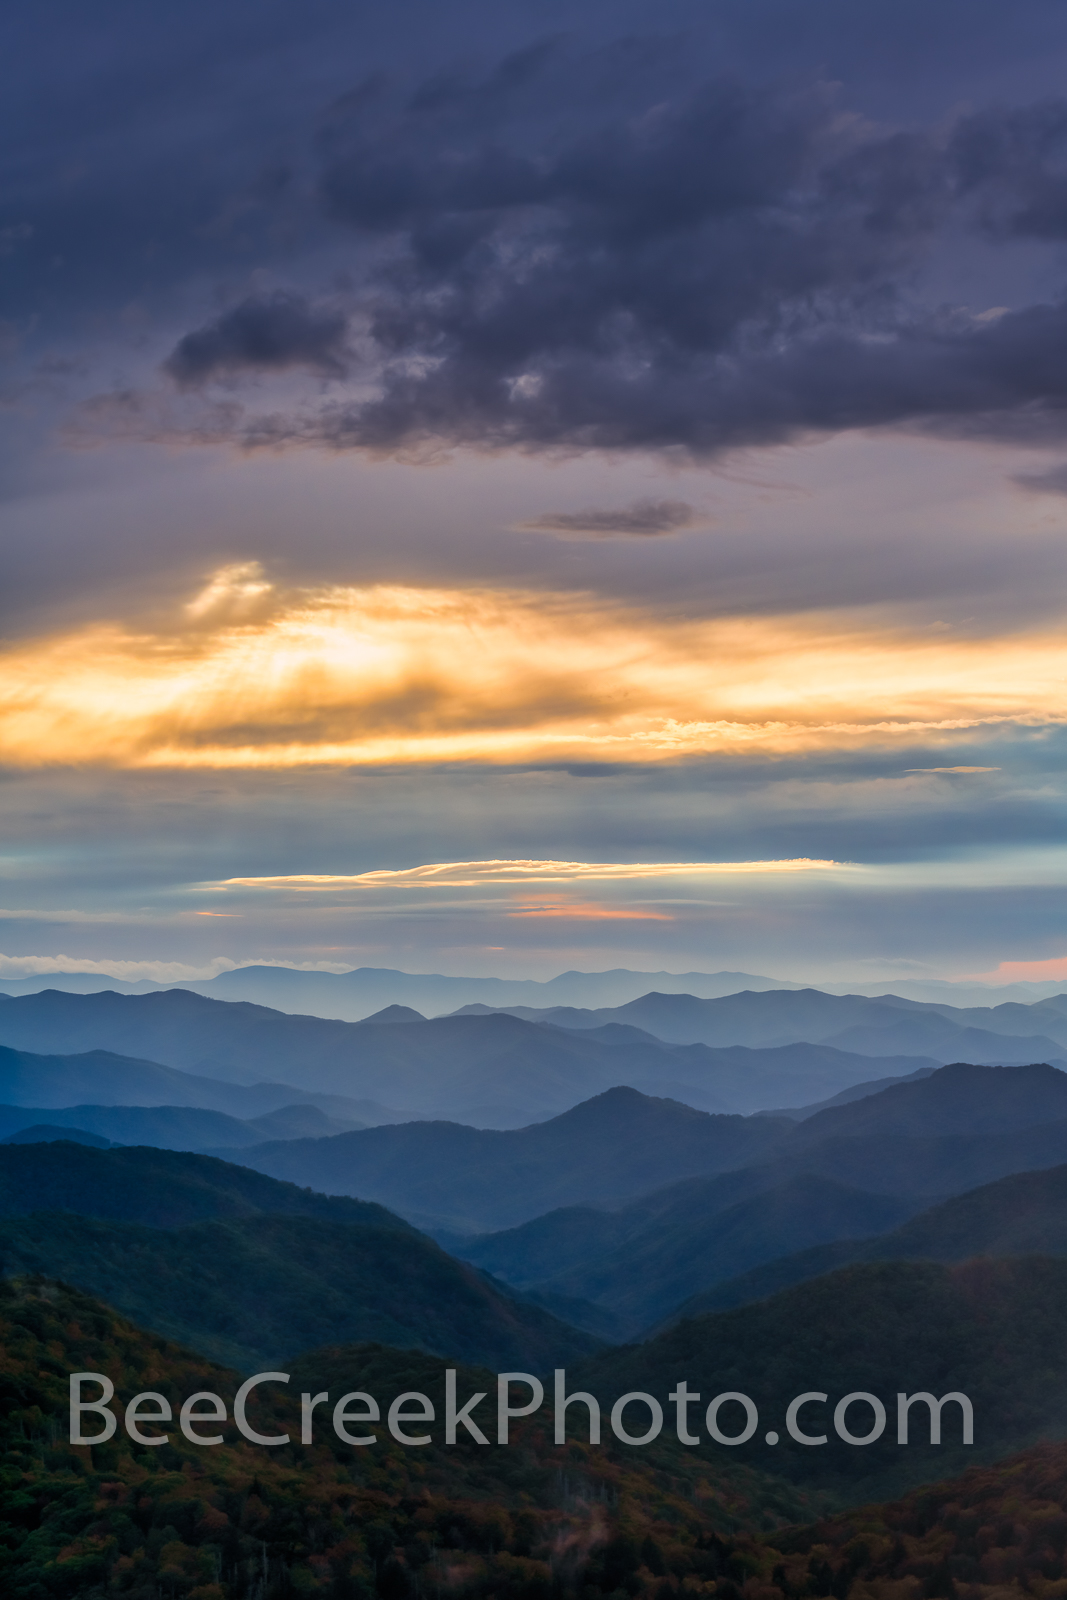 blue ridge, blueridge, blue ridge mountains, smoky mountains, overlook, sunset, color, colors, painterly, blue, purples, yellow, pink, ridges, valley, clouds, moody, vertical, tennesses, north carolin, photo